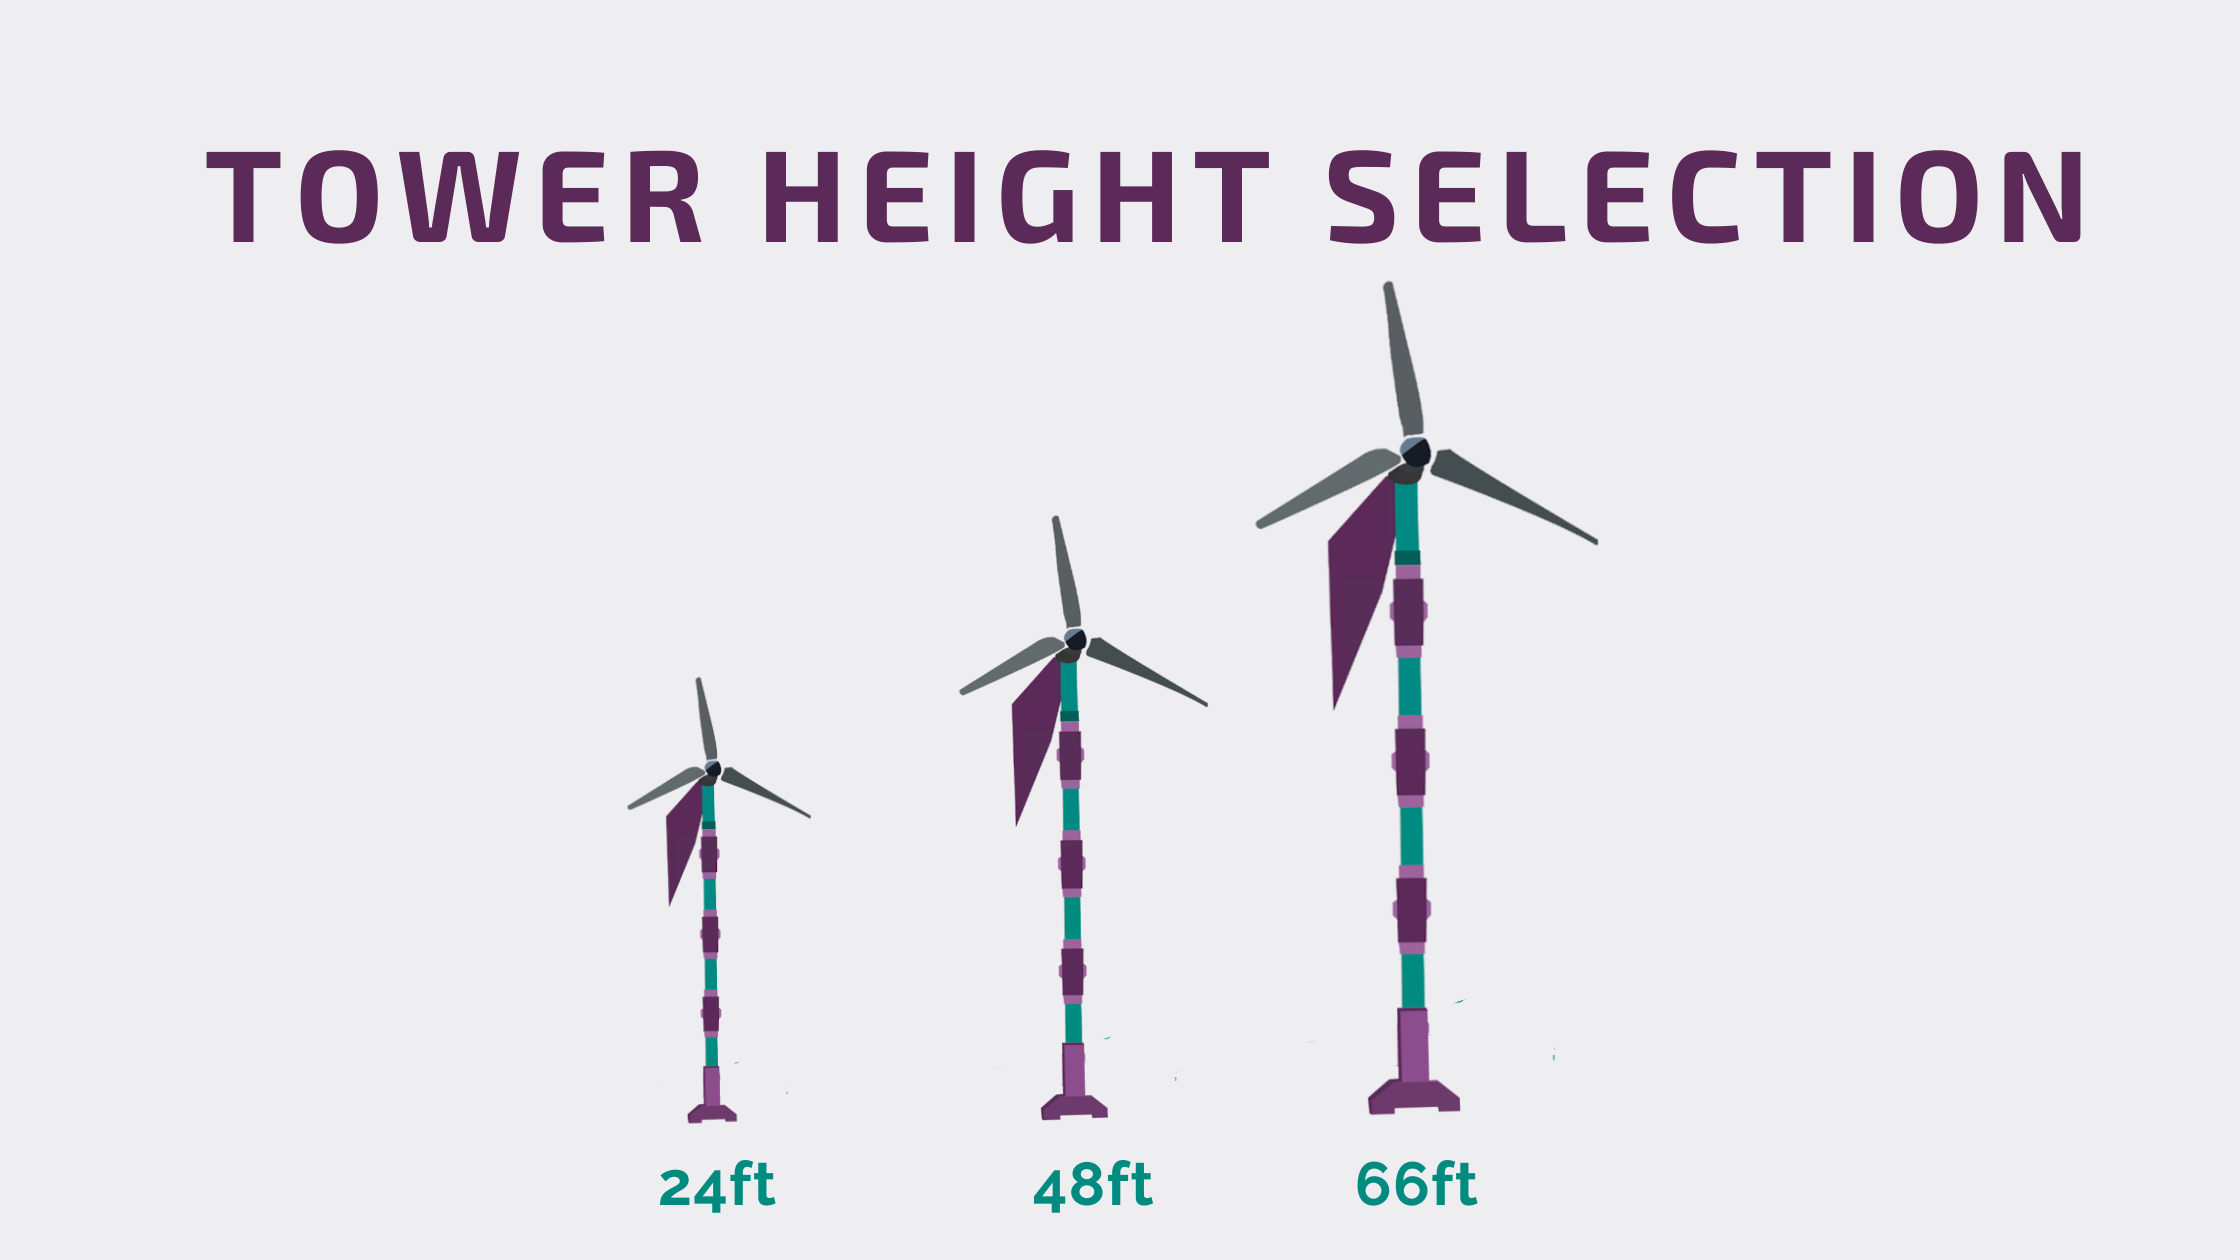 Tower Height Selection